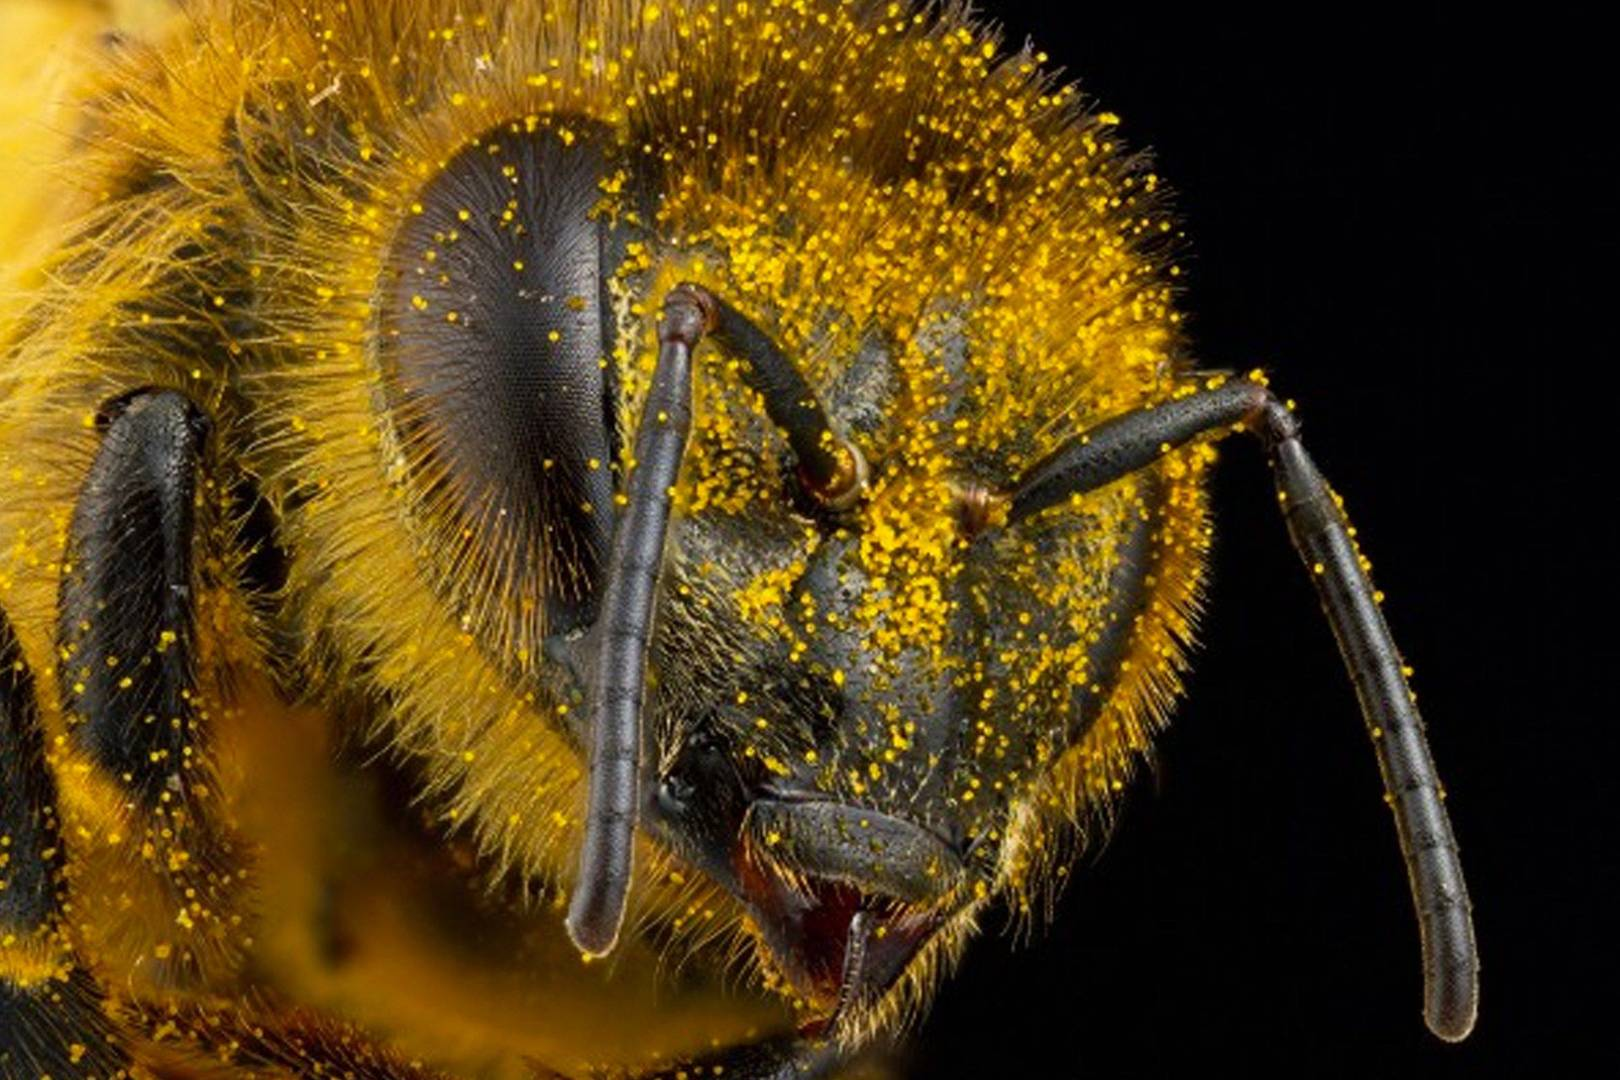 Insect photographer squashed by copyright infringement